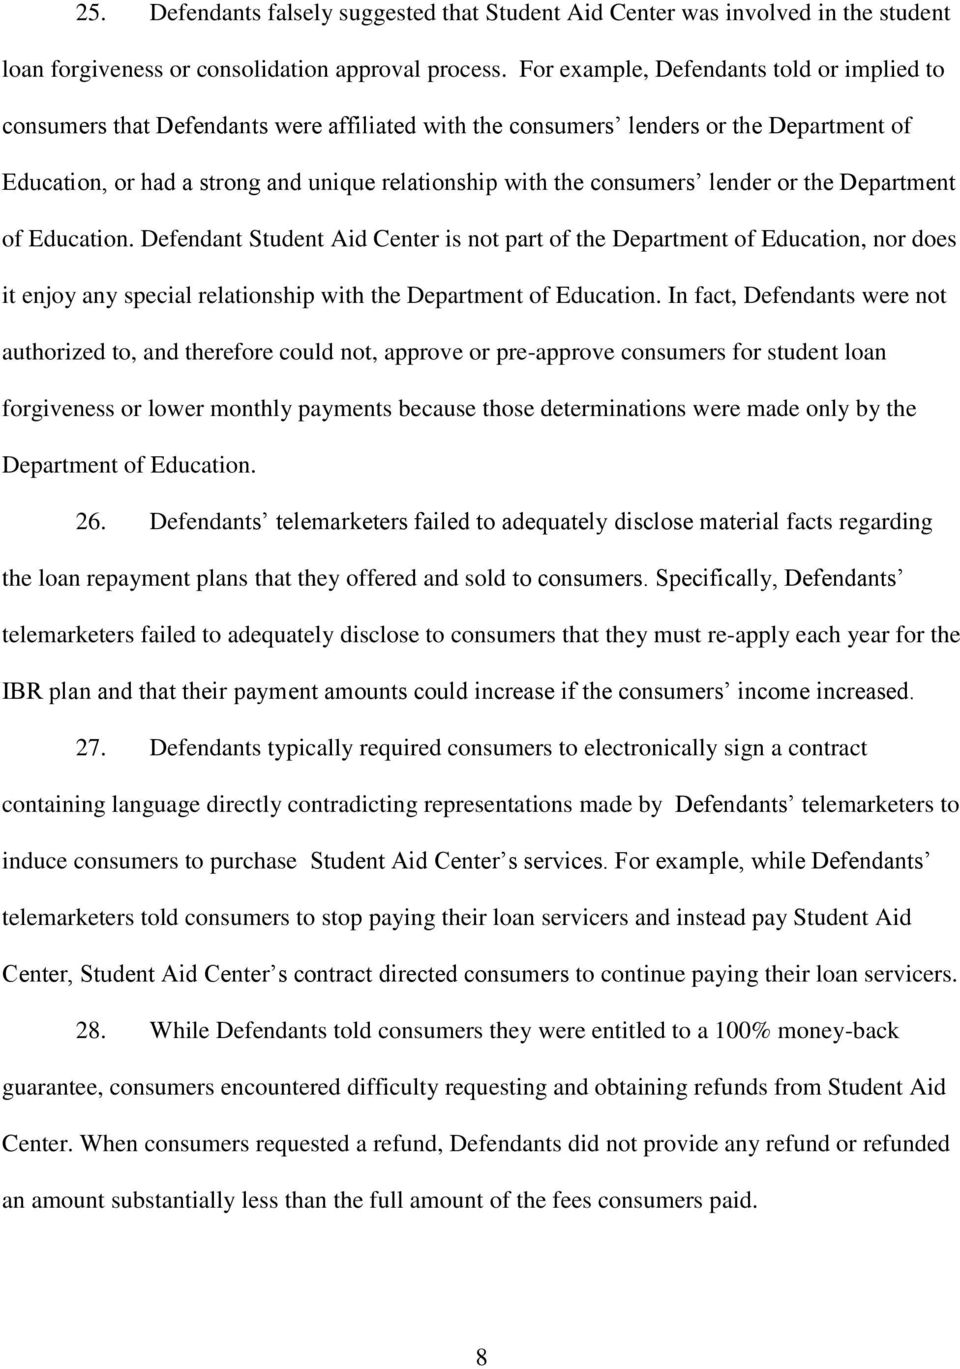 consumers lender or the Department of Education. Defendant Student Aid Center is not part of the Department of Education, nor does it enjoy any special relationship with the Department of Education.